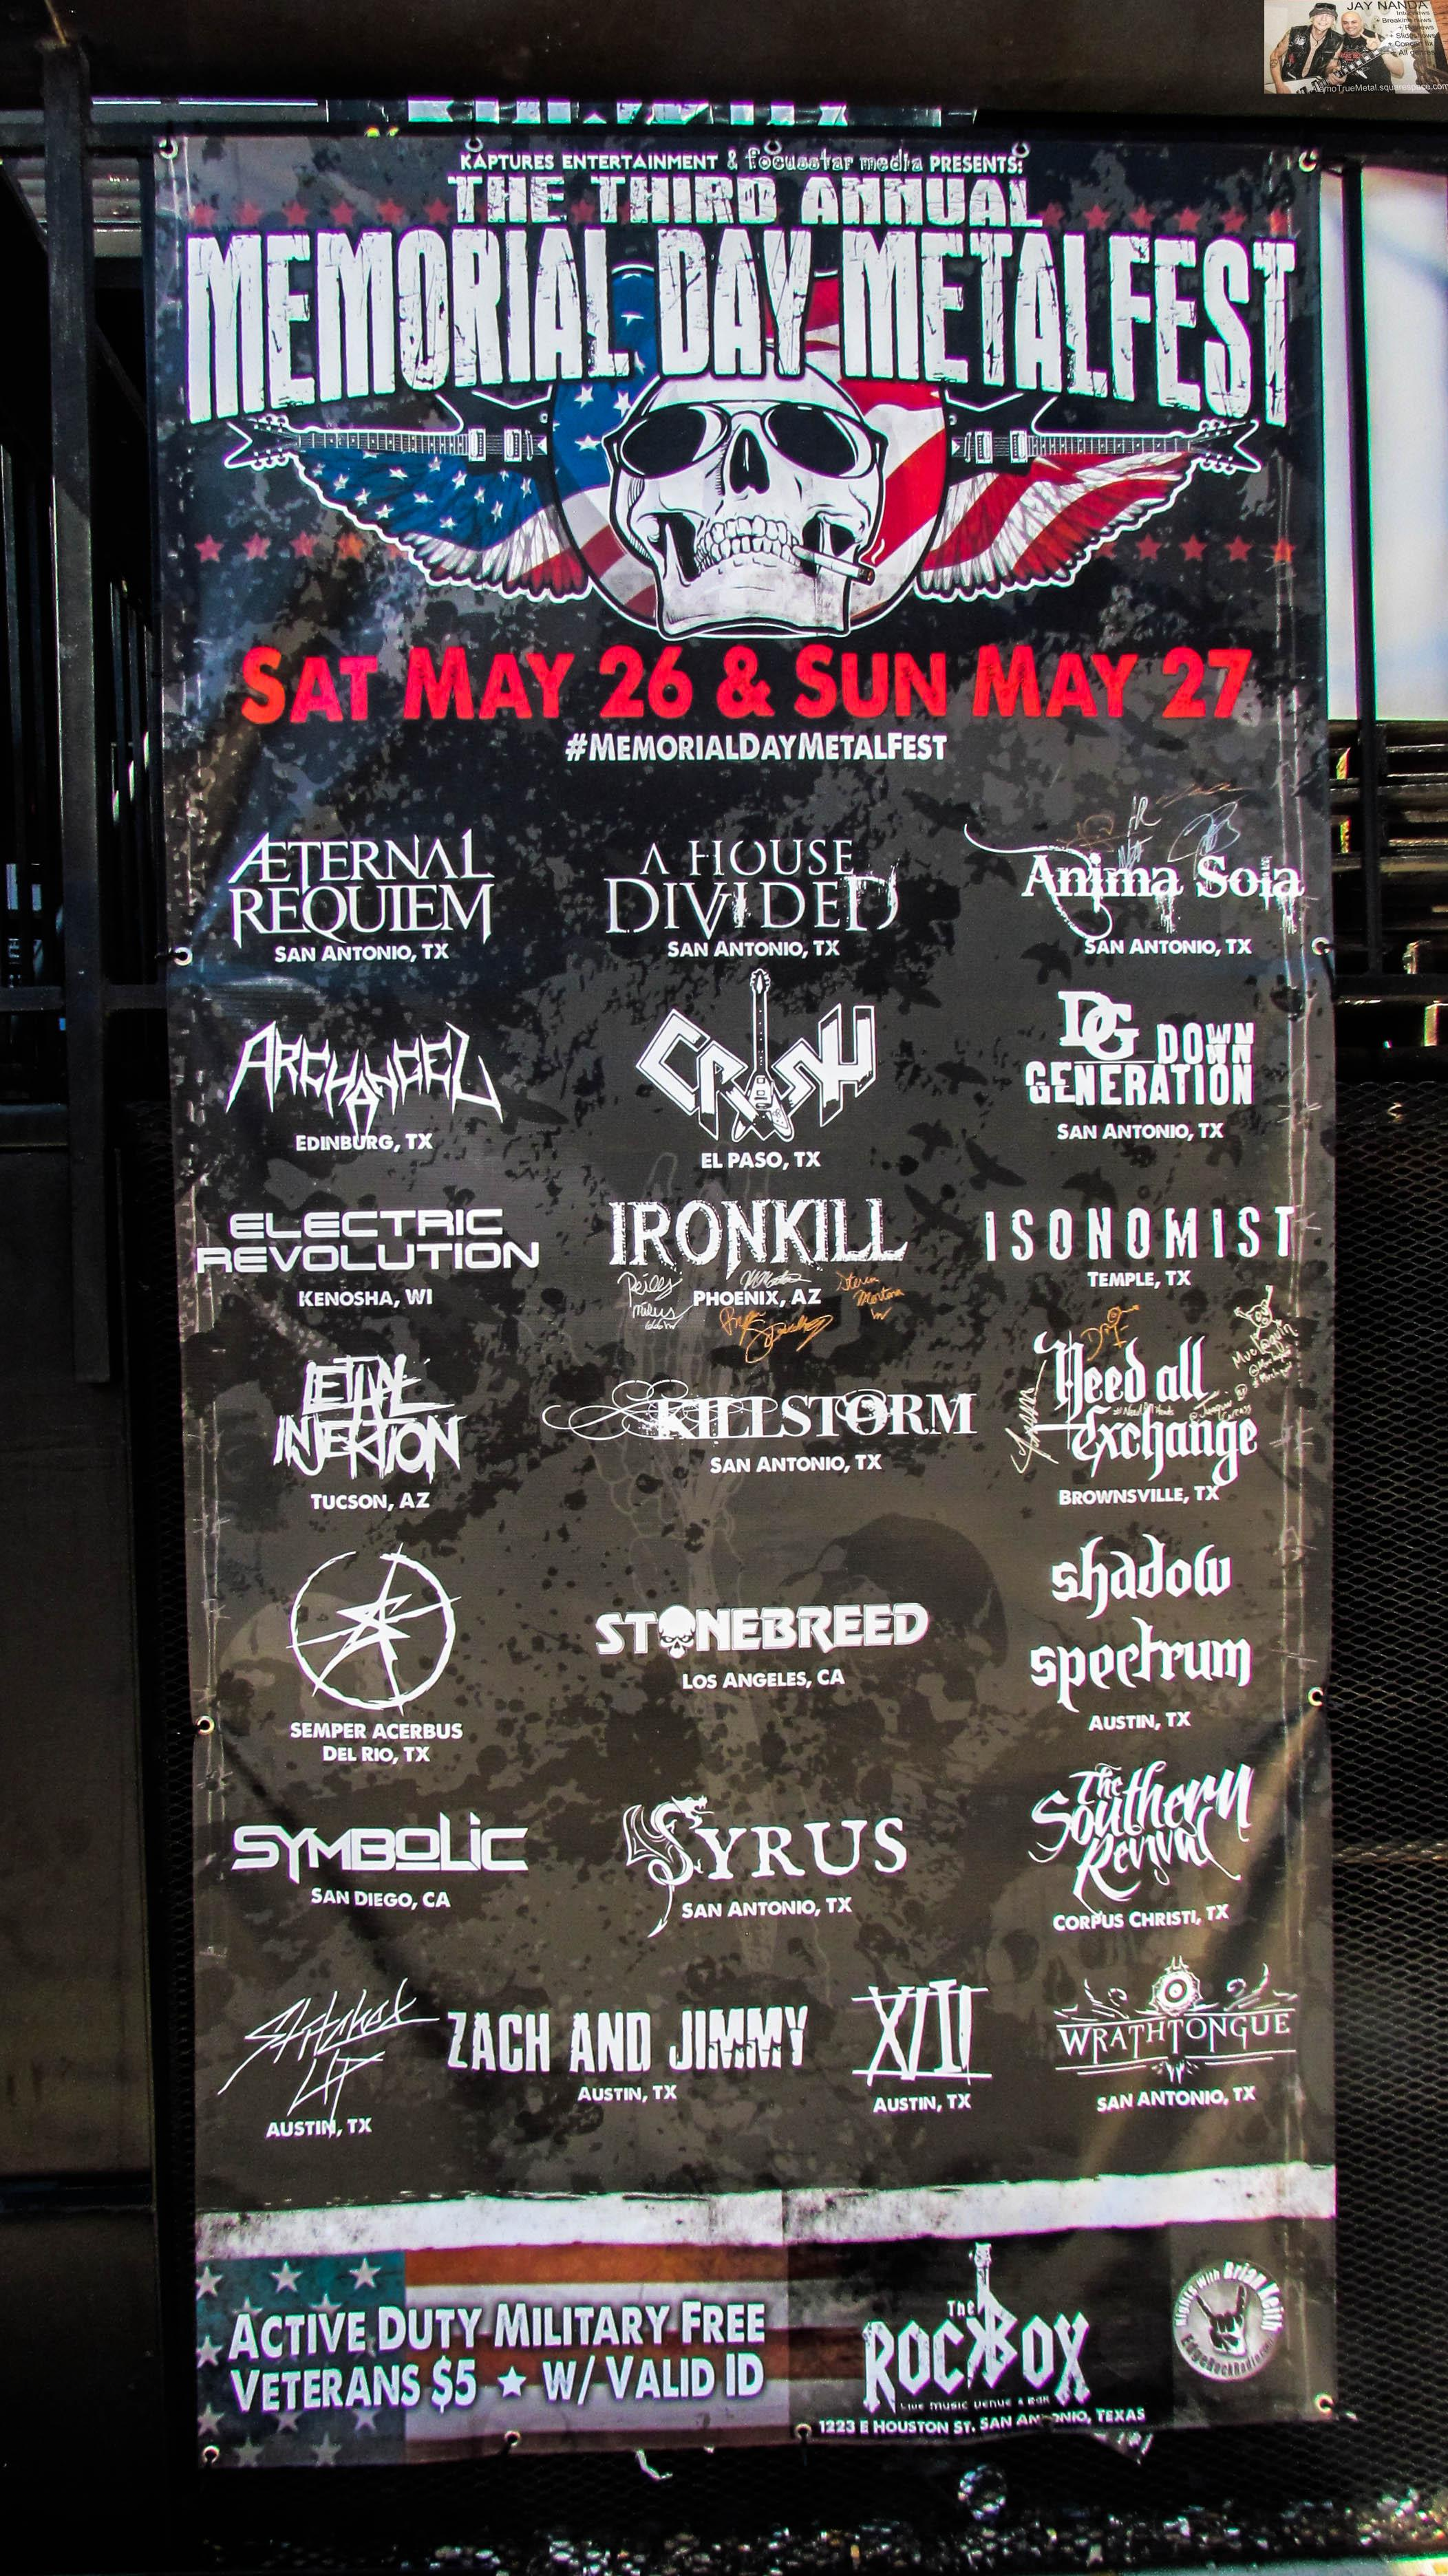 The schedule of 22 bands from around the nation — 11 on Saturday and 11 on Sunday — was whittled to 20 when Stitched Up could not make it from Austin, while locals Down Generation dropped out of a 1 a.m. Sunday night set time prior to the holiday.